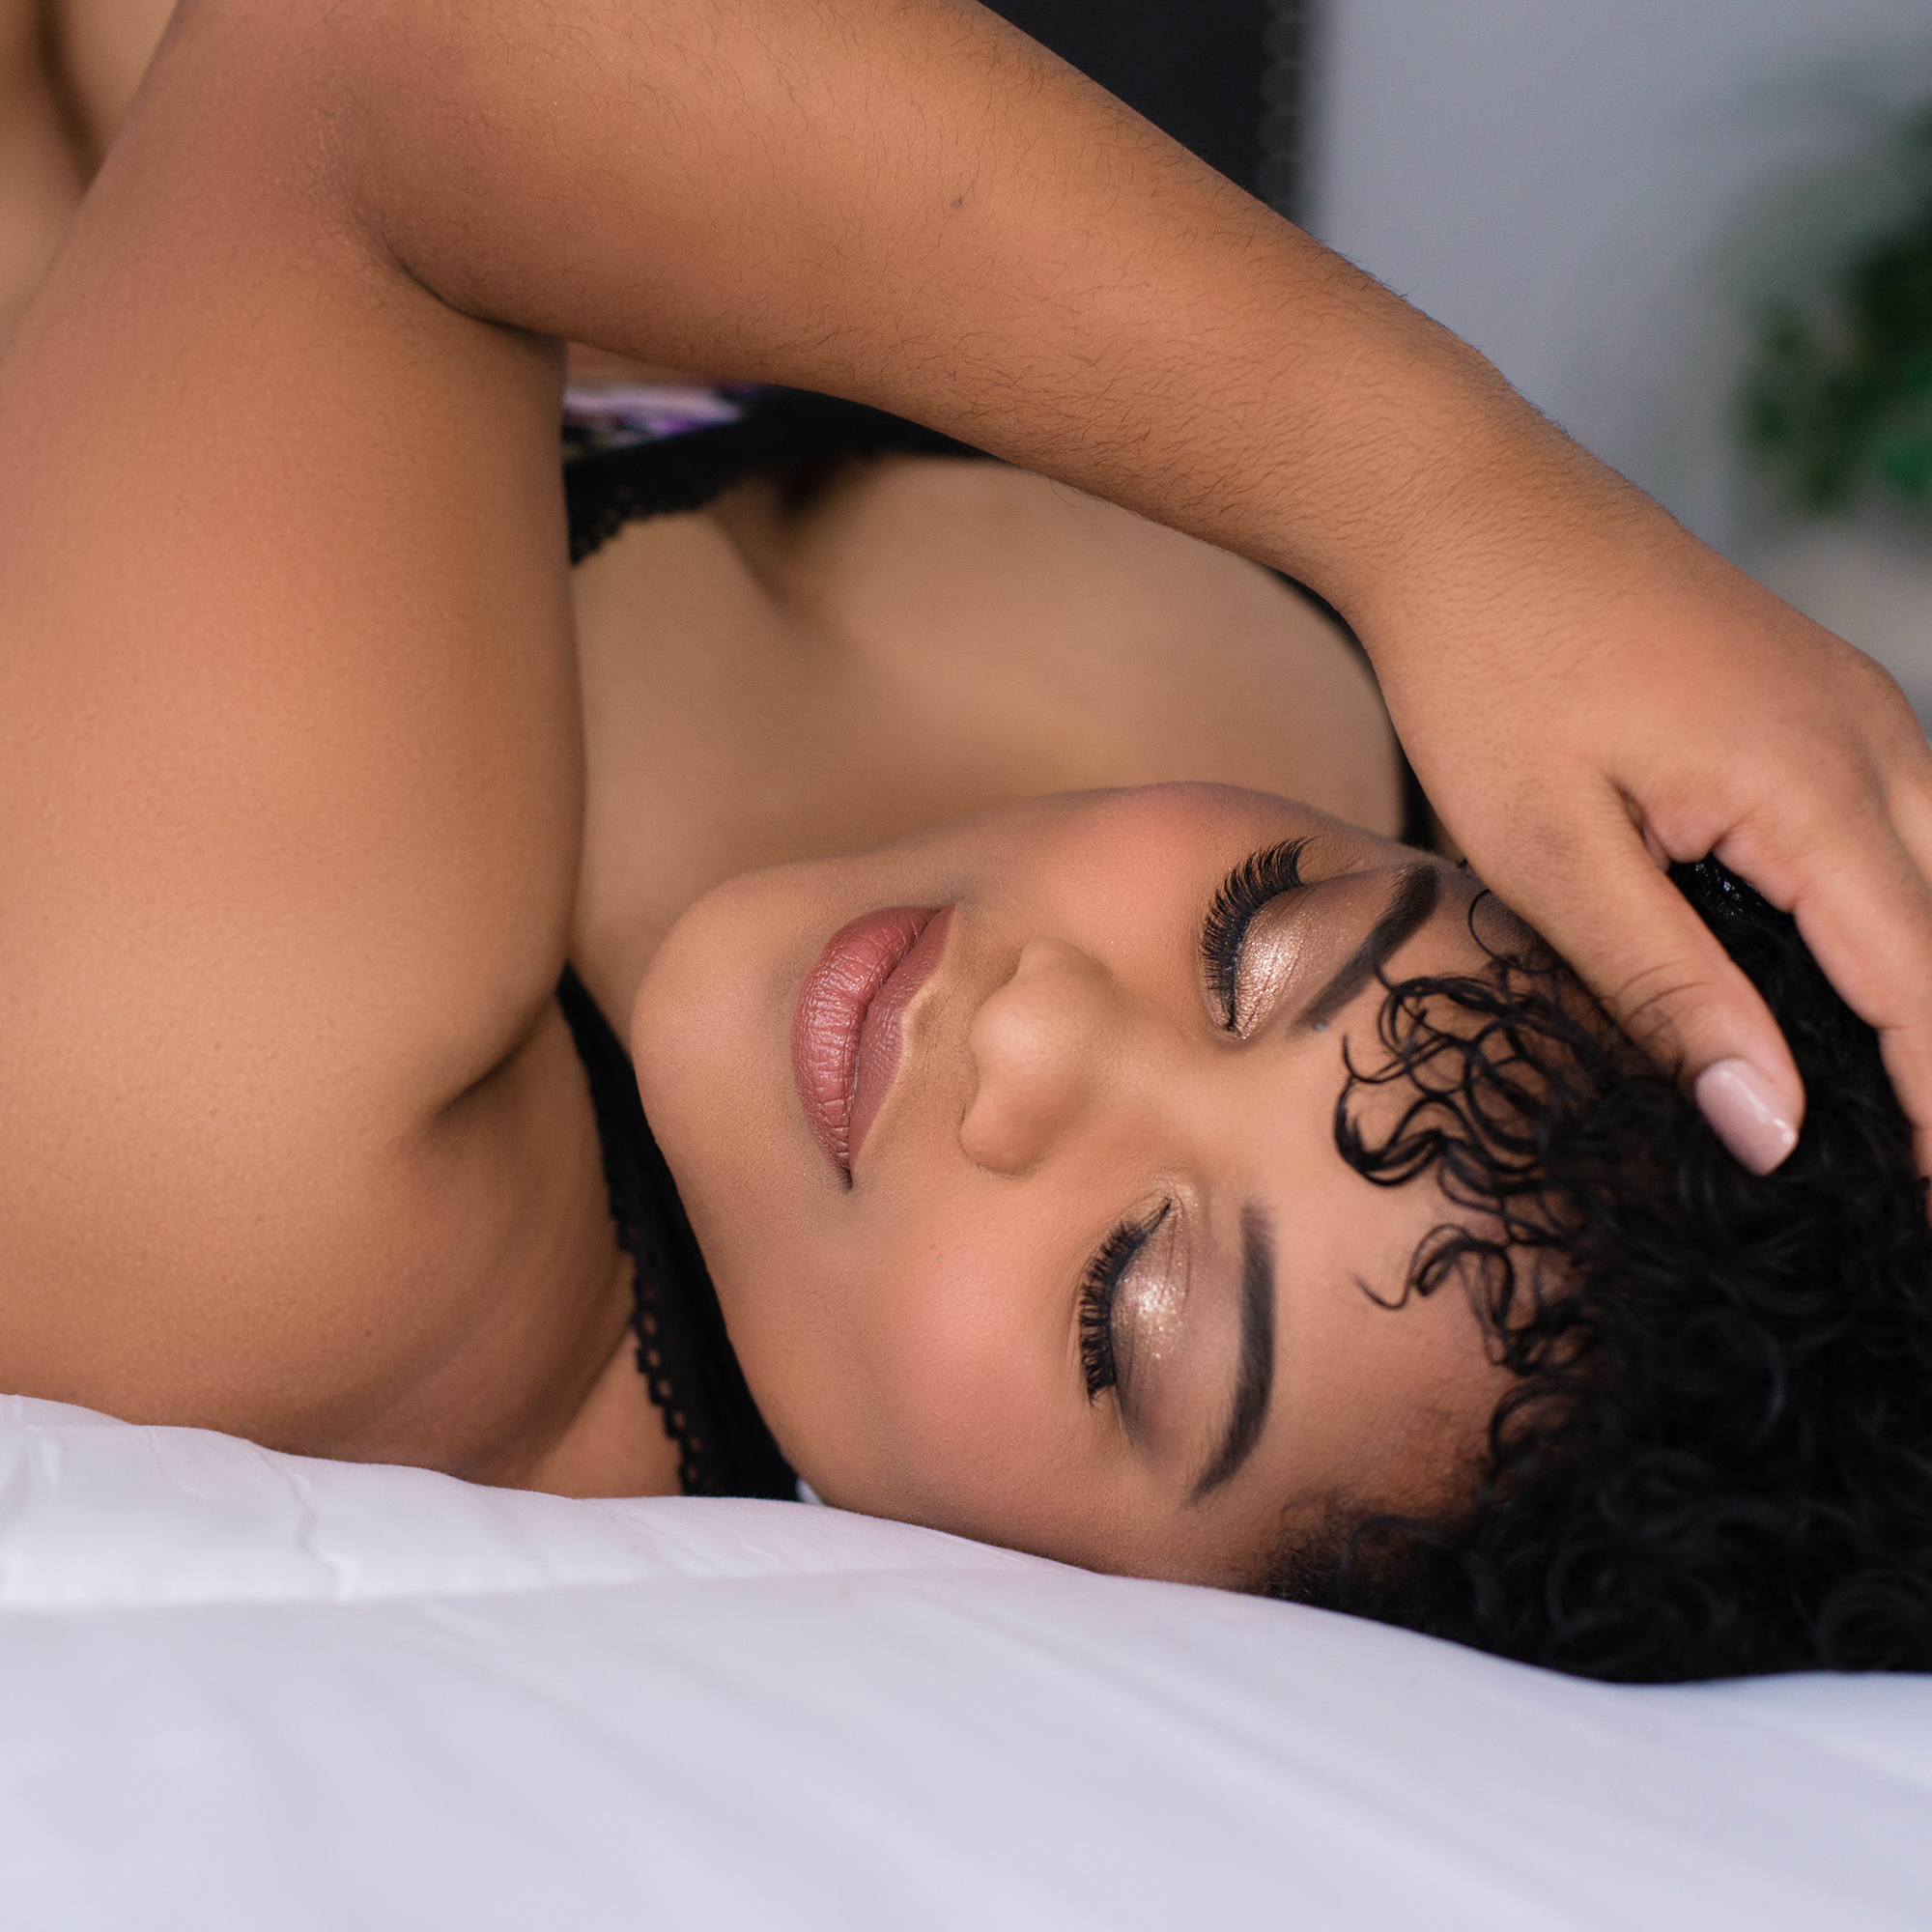 Stunning african american woman with eyes closed on bed smiling in LGEmerick Photohraphy's studio